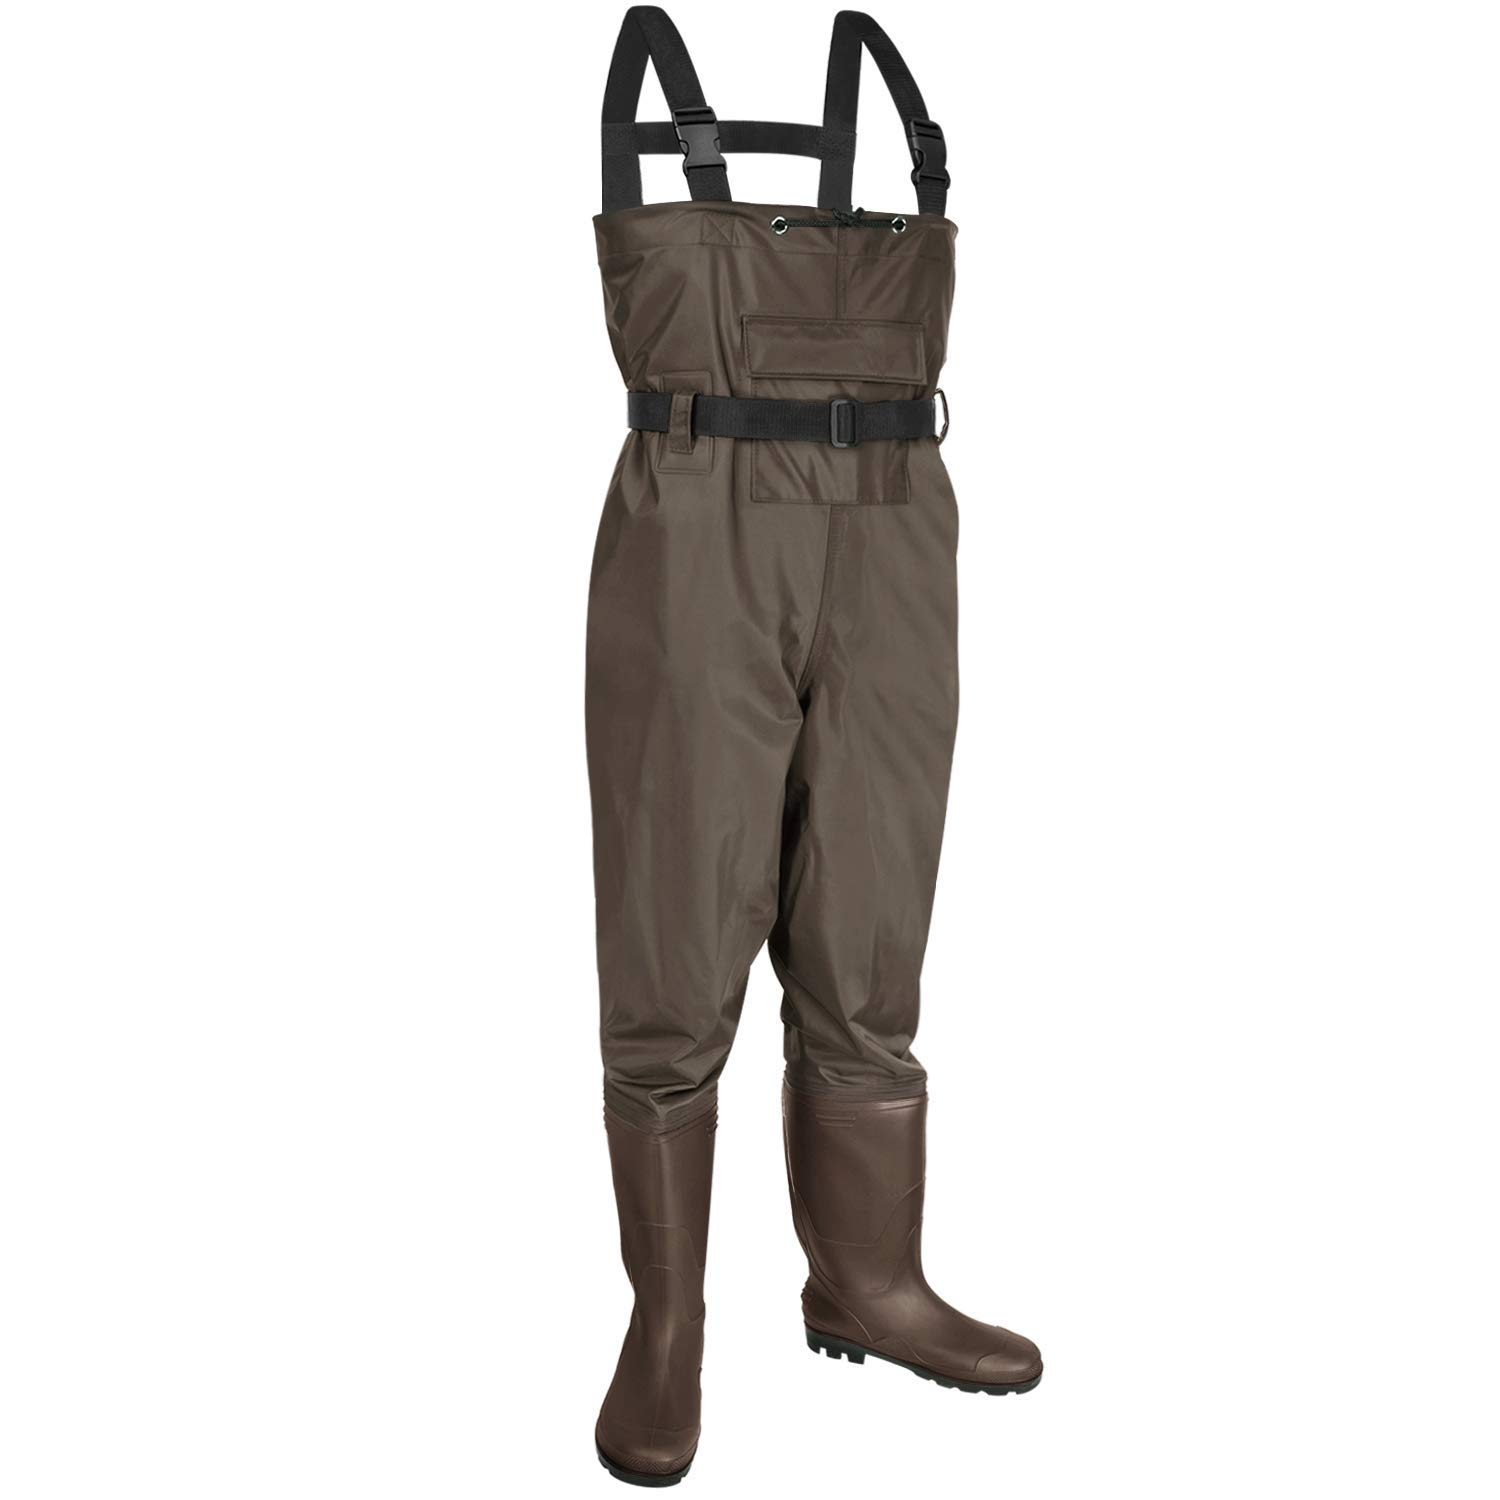 YOHTON Chest Wader, 2-Ply Nylon PVC Waterproof Fishing Hunting Waders for Men and Women